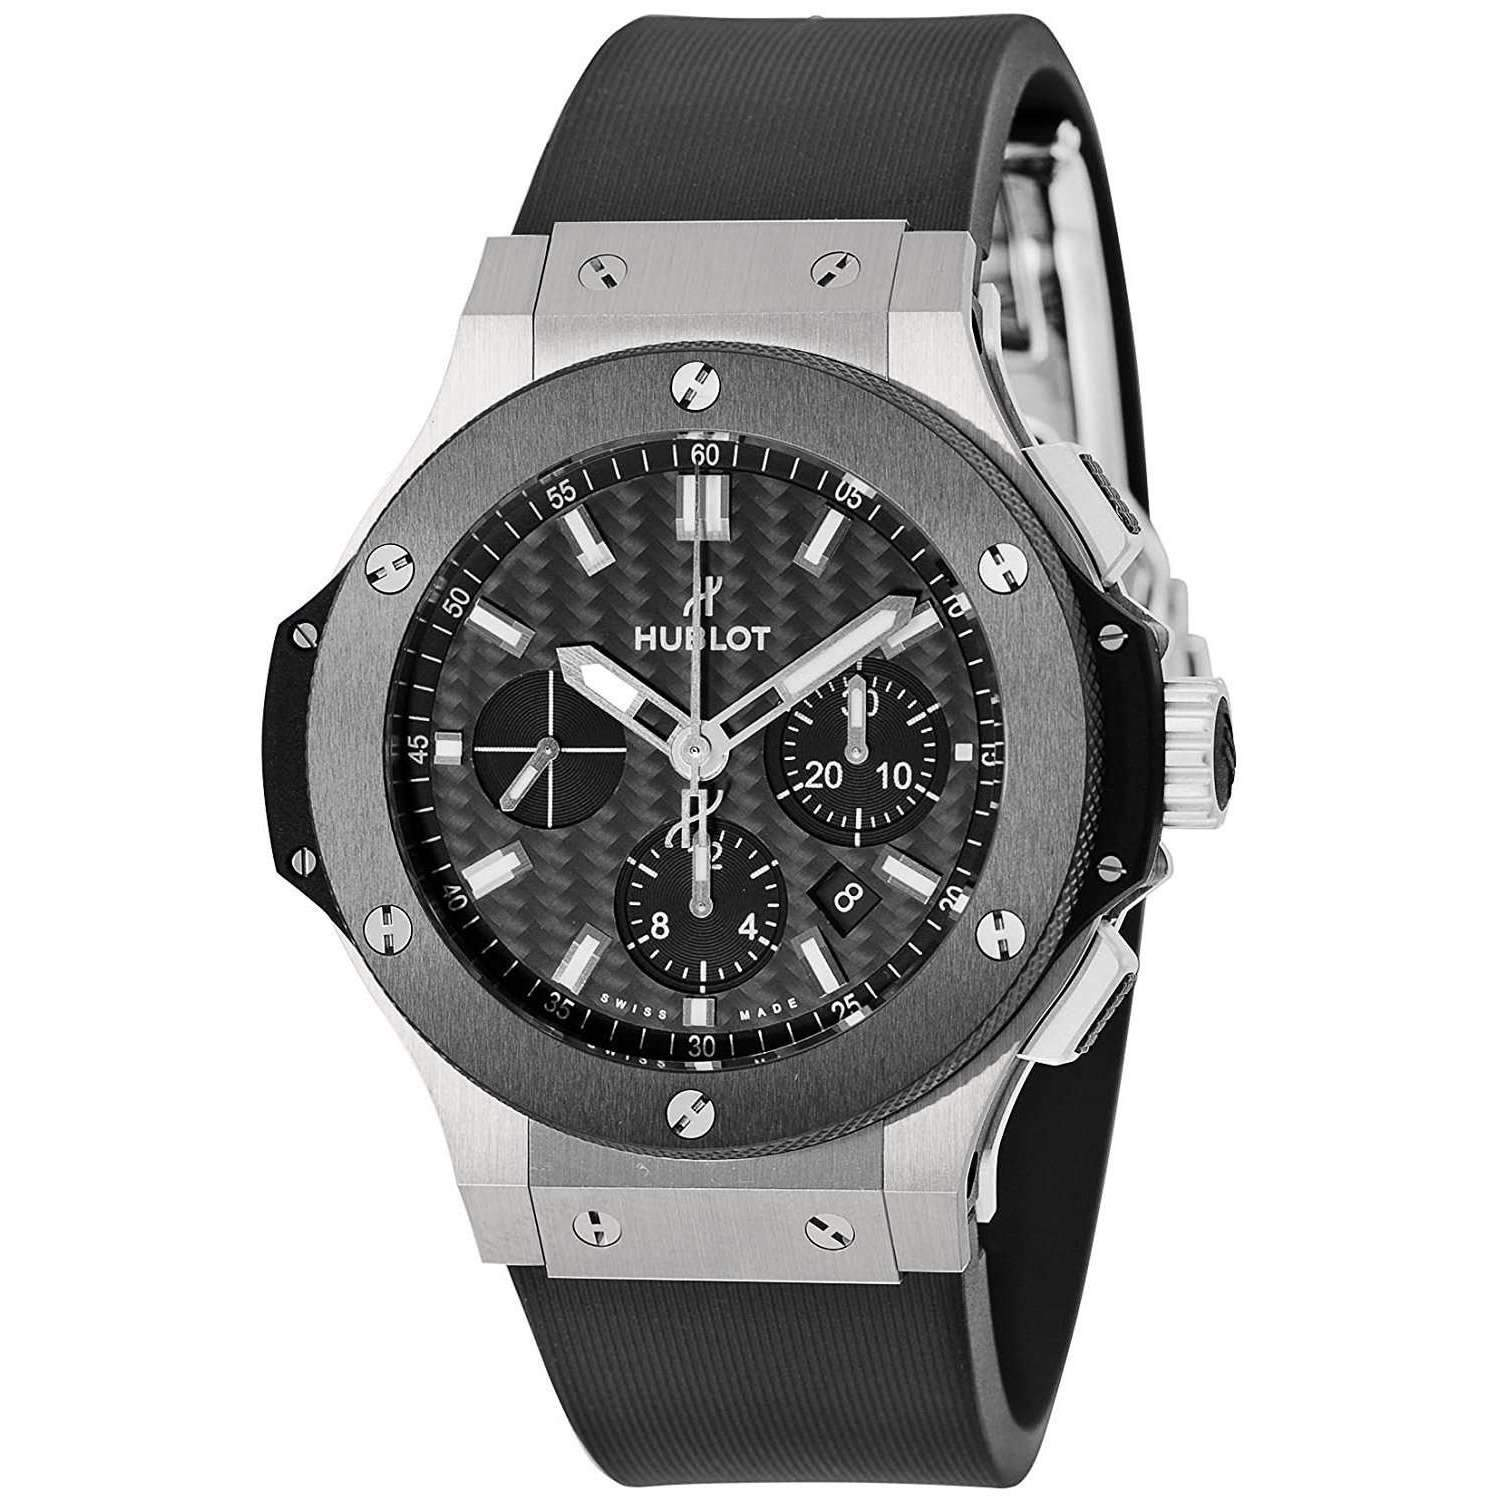 HUBLOT BIG BANG STEEL CERAMIC 44 MM MEN WATCH 301.SM.1770.RX - ROOK JAPAN